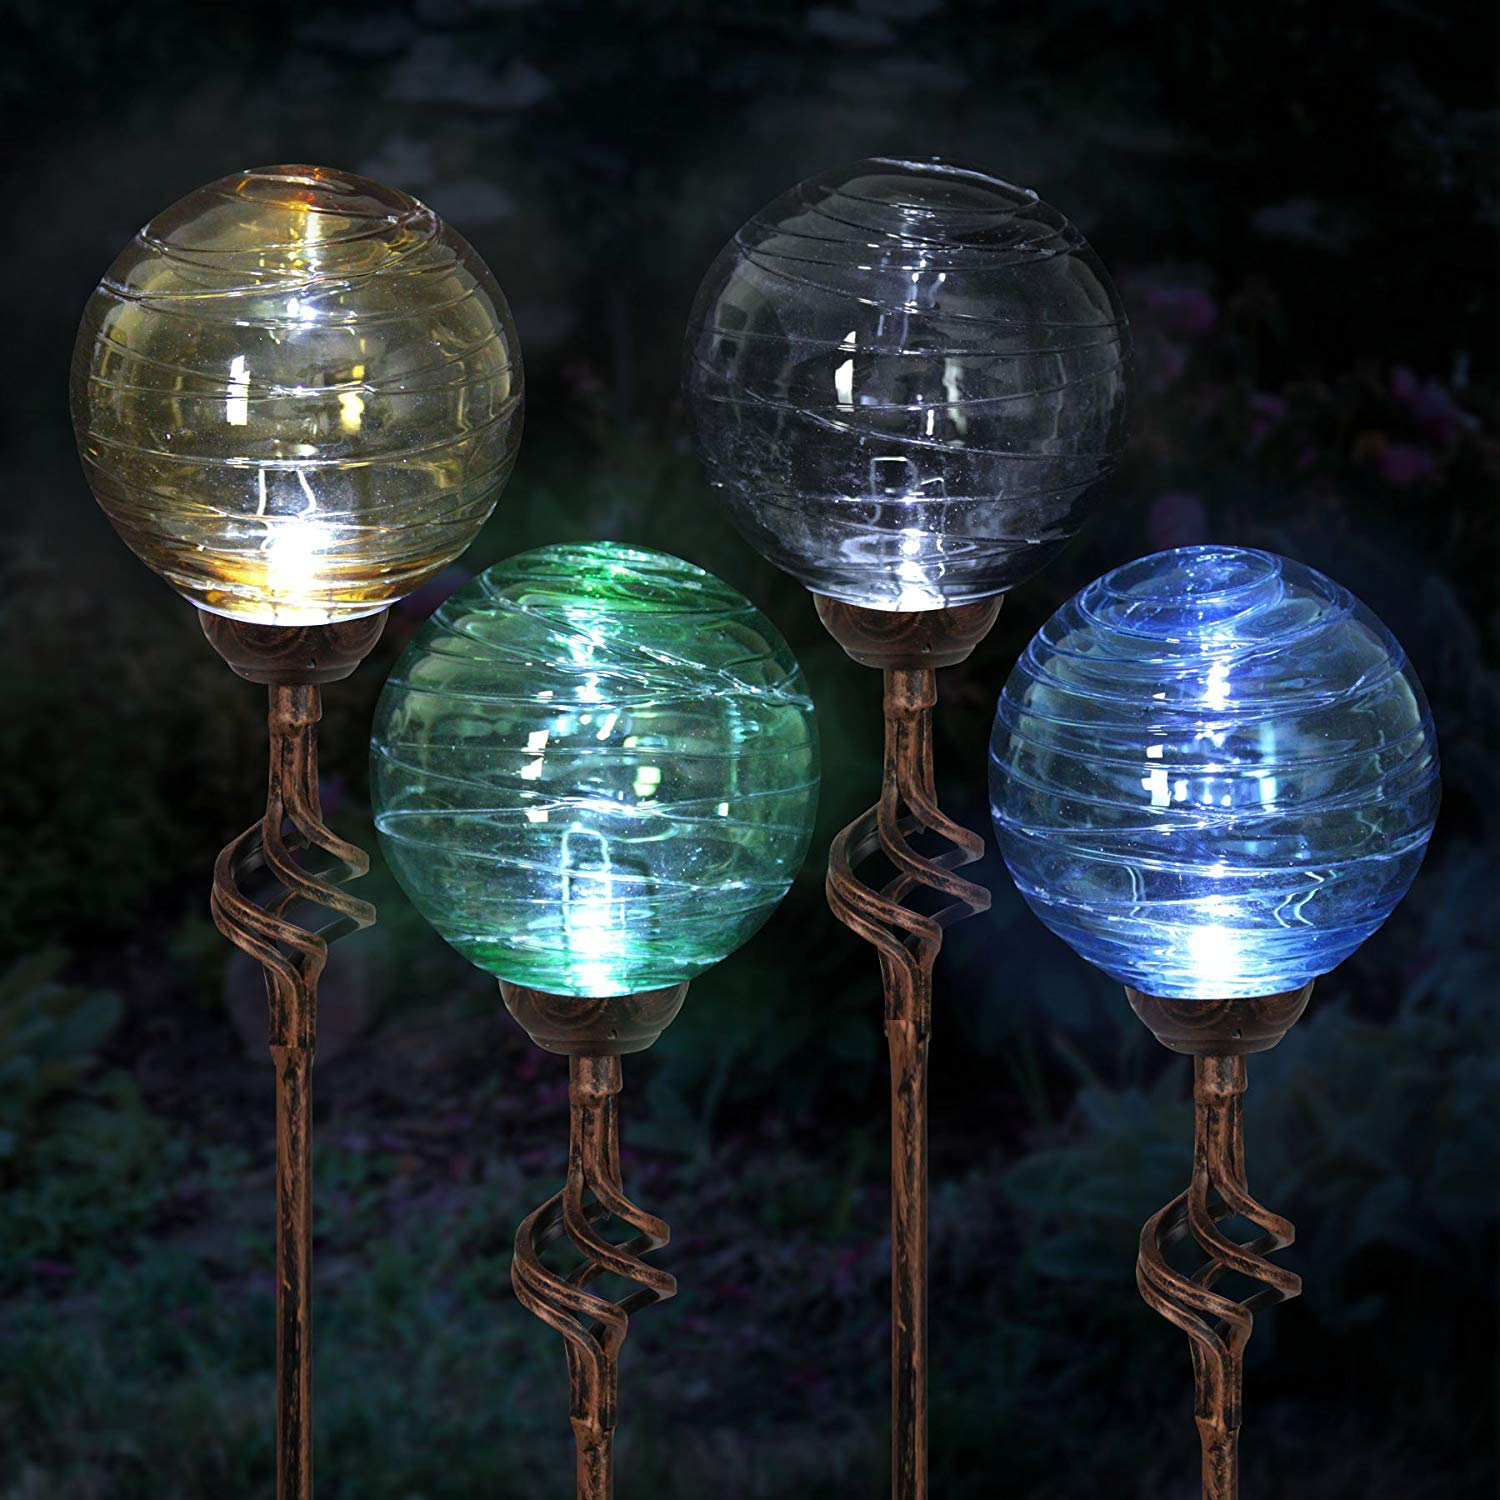 Get Quotations · Exhart 4pk Solar Hairline Glass Ball Finial Garden Stake  Assortment, Stakes, Variety Of Colors